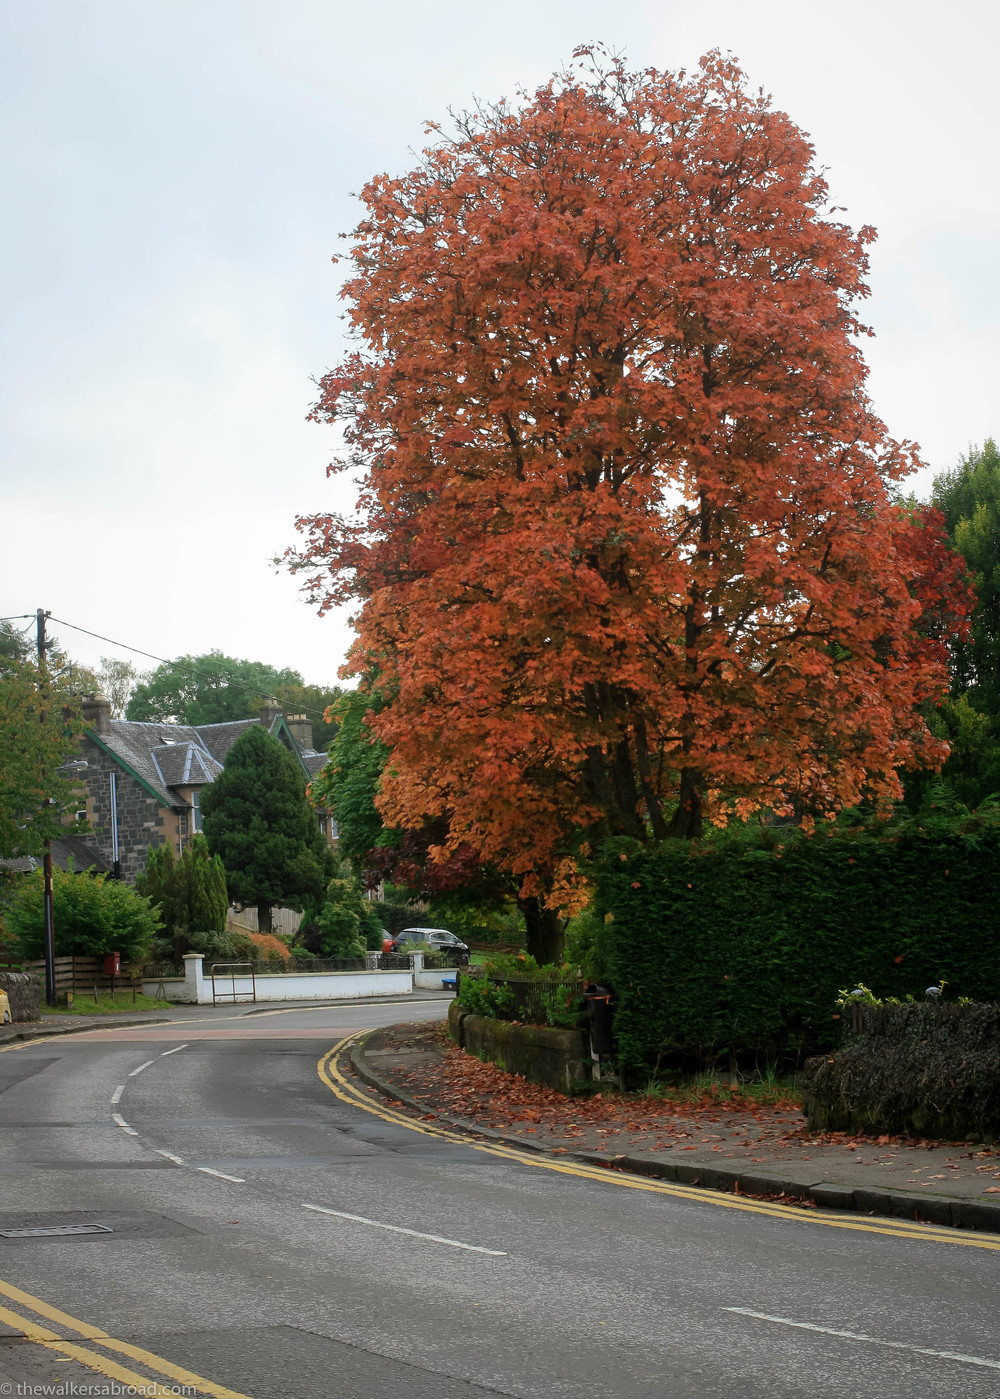 A stunning, red tree in Aberfoyle.